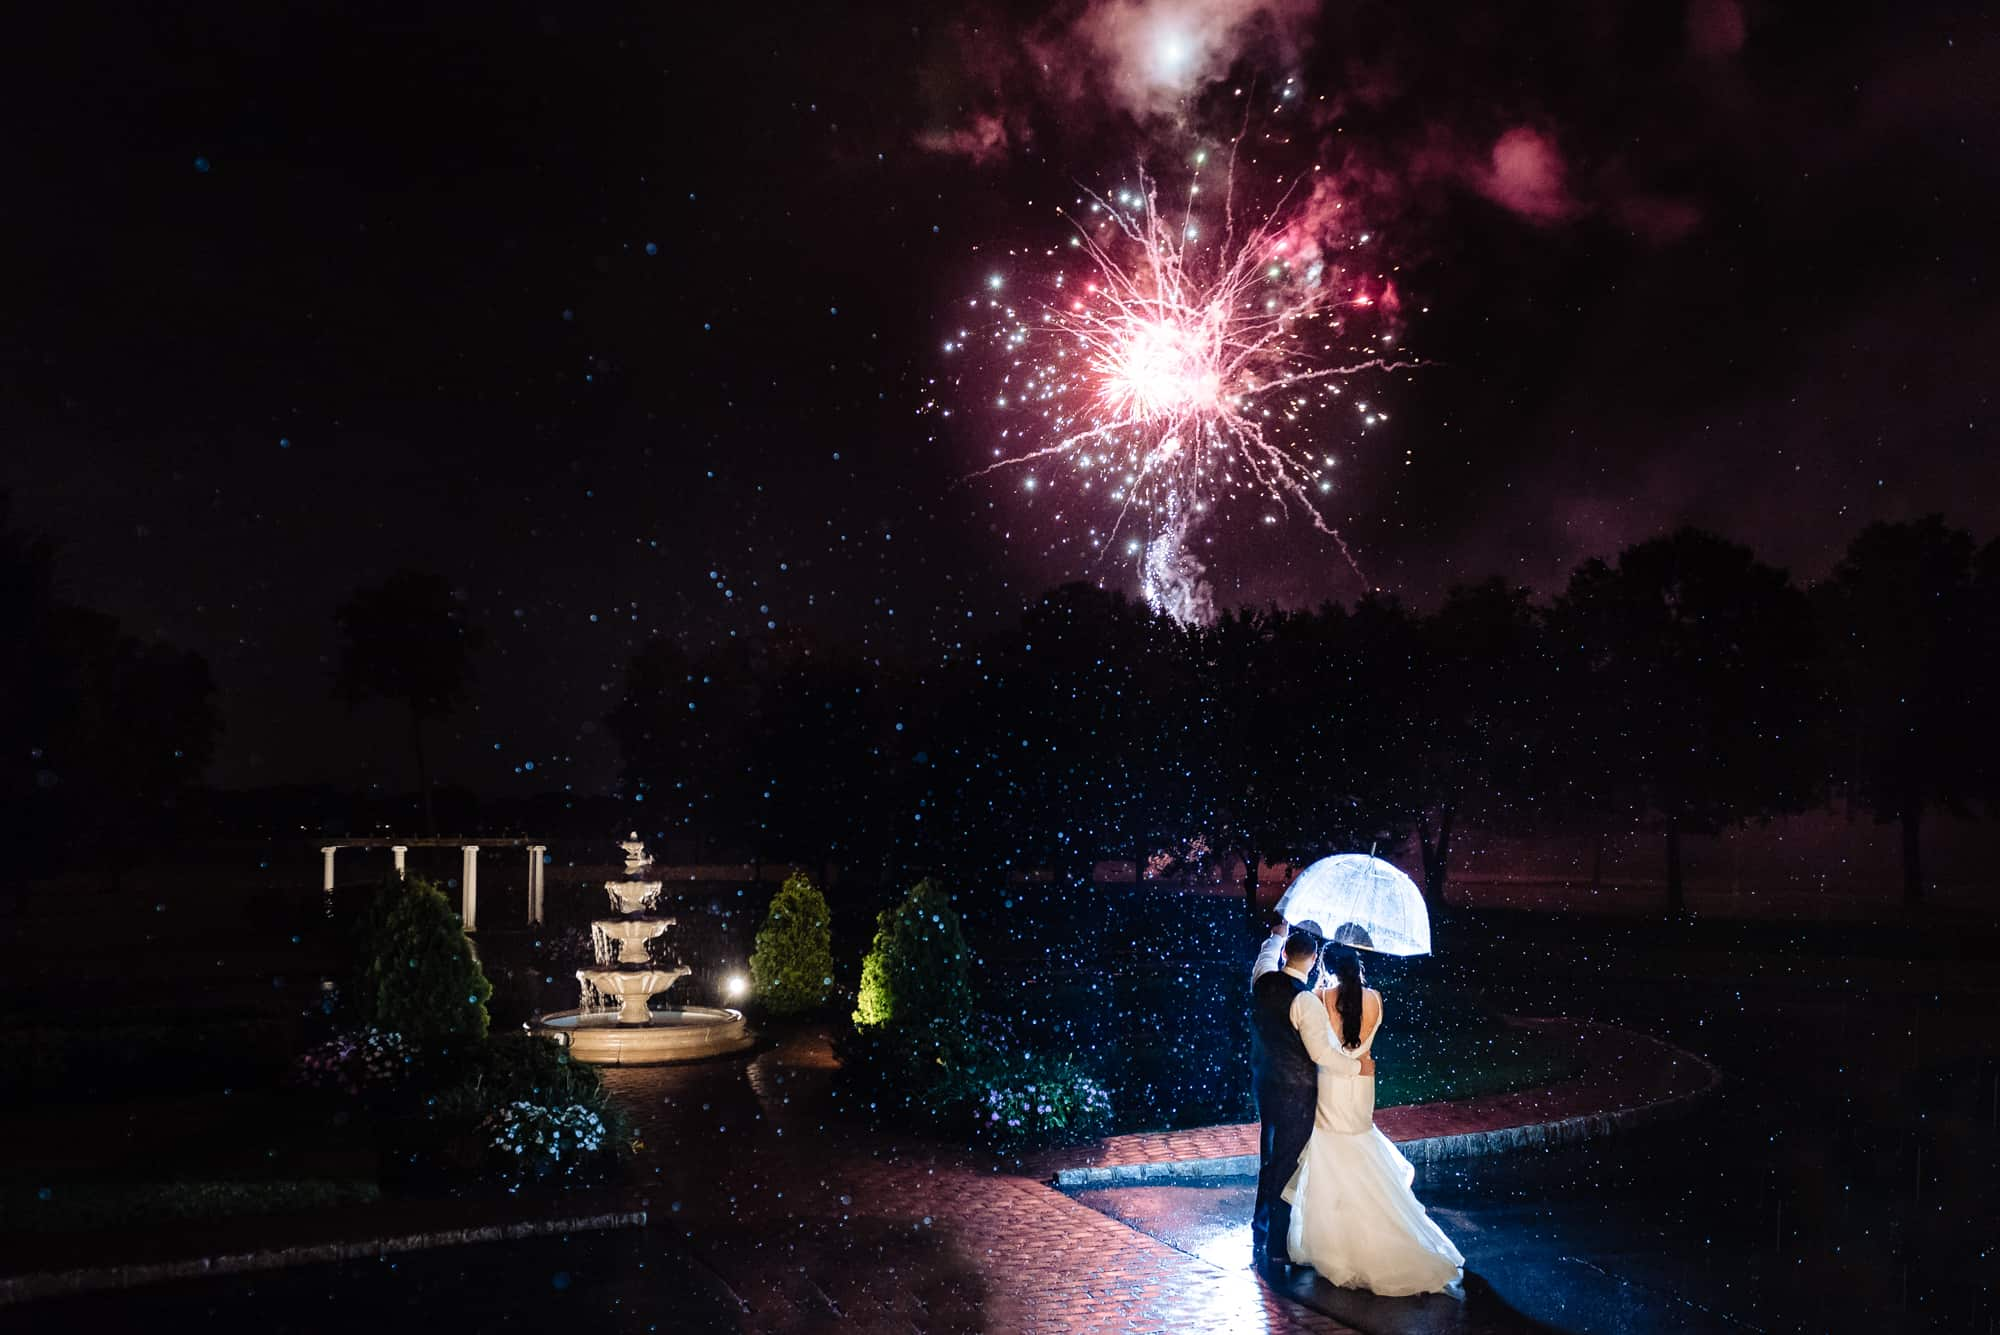 wedding day, bride and groom looking at red firework under an umbrella on a rainy night